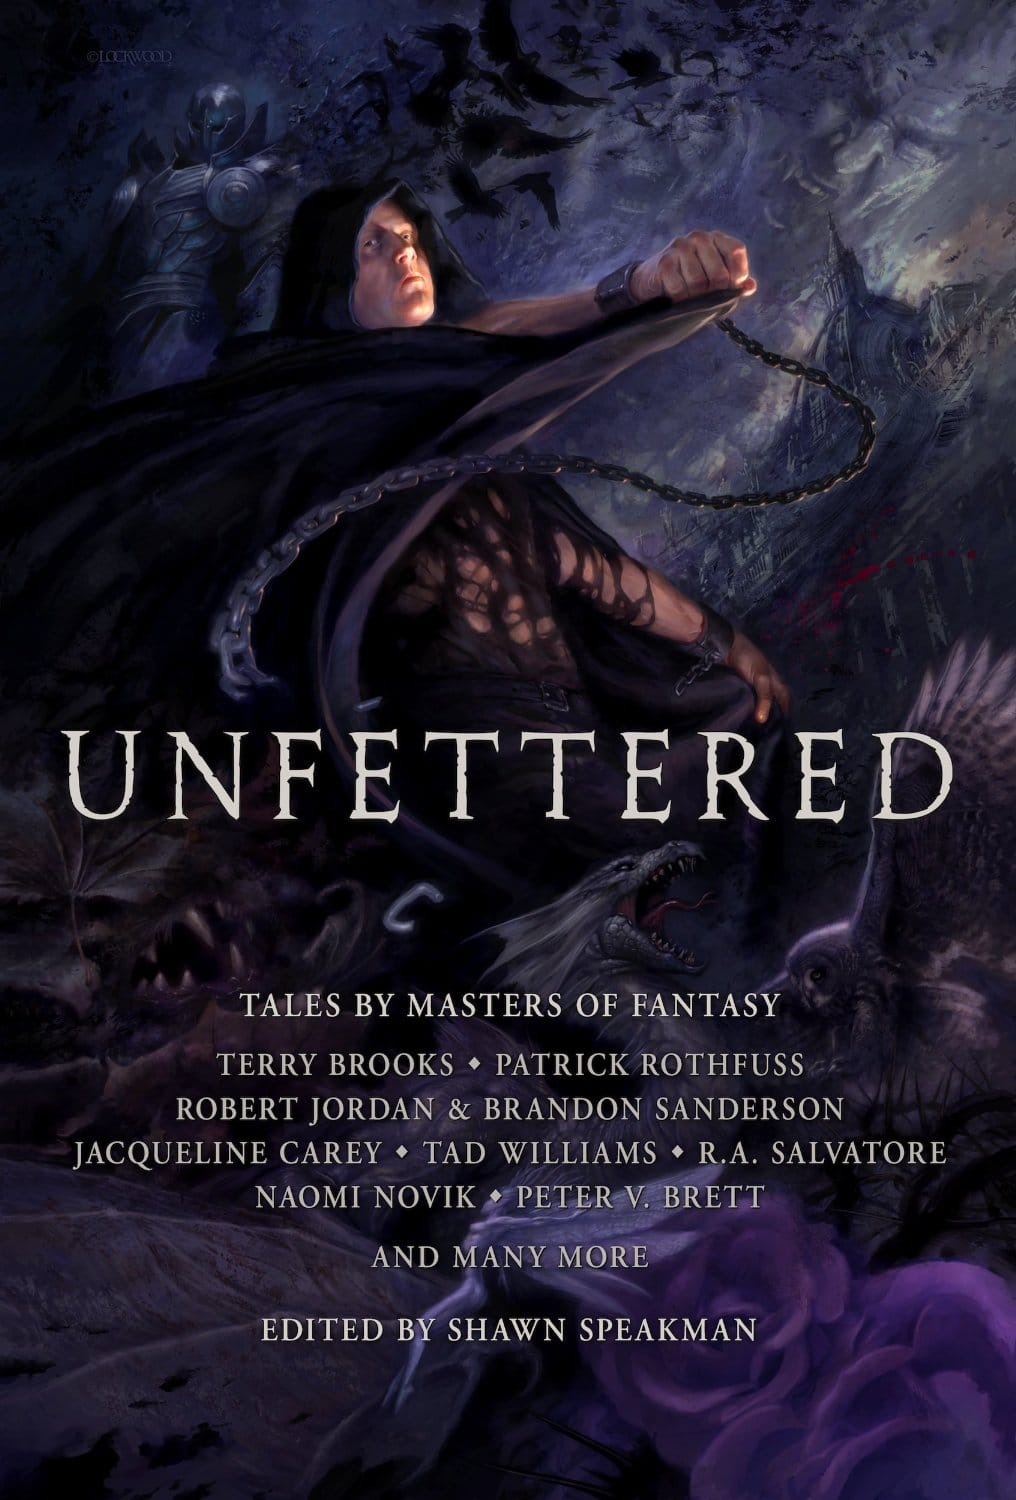 Unfettered Anthology Grim Oak Press (2012)